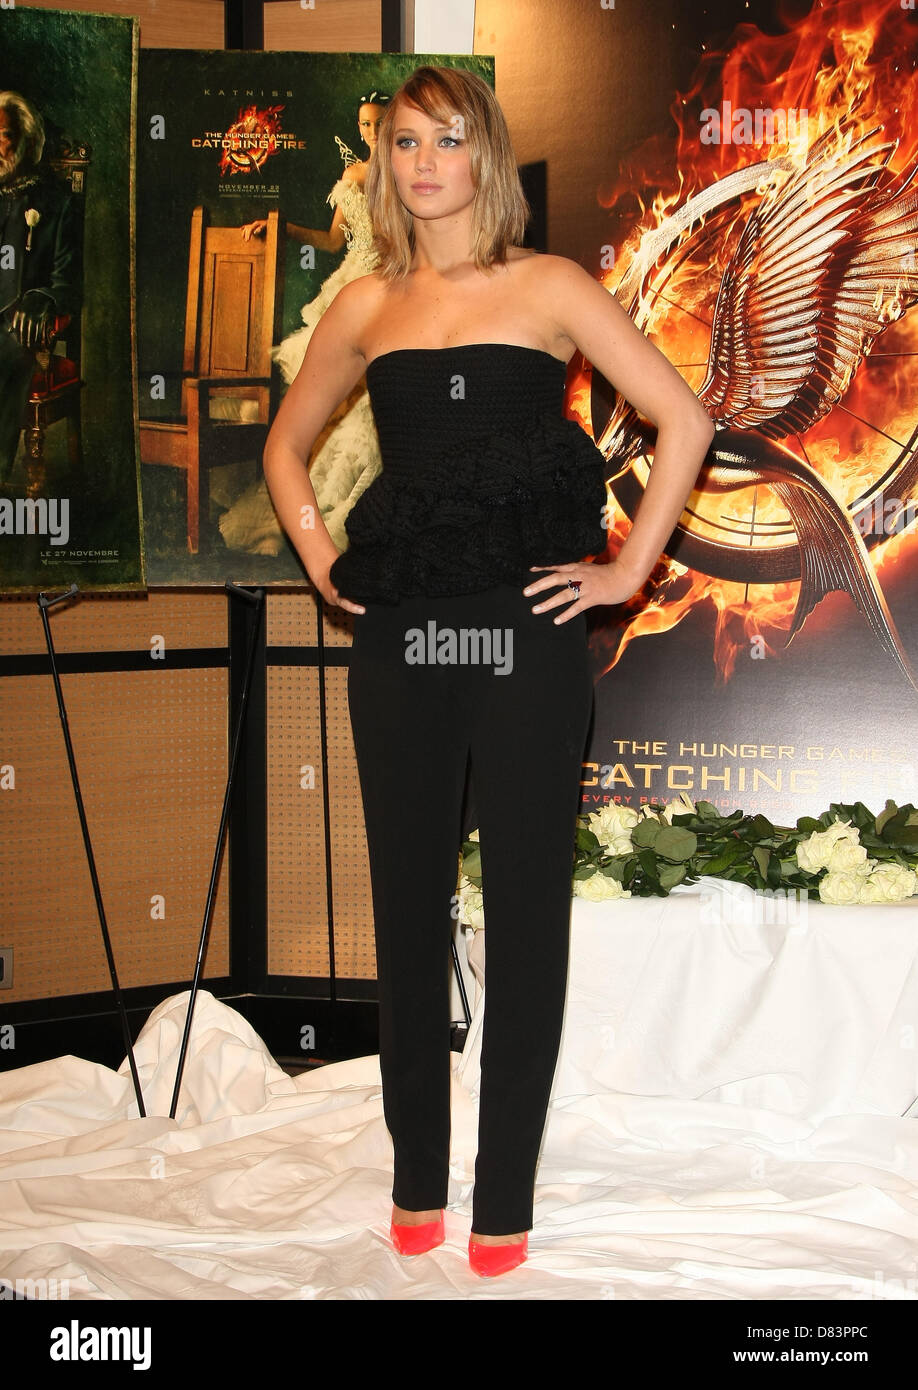 Jennifer Lawrence The Hunger Games Catching Fire Photocall Cannes Stock Photo Alamy